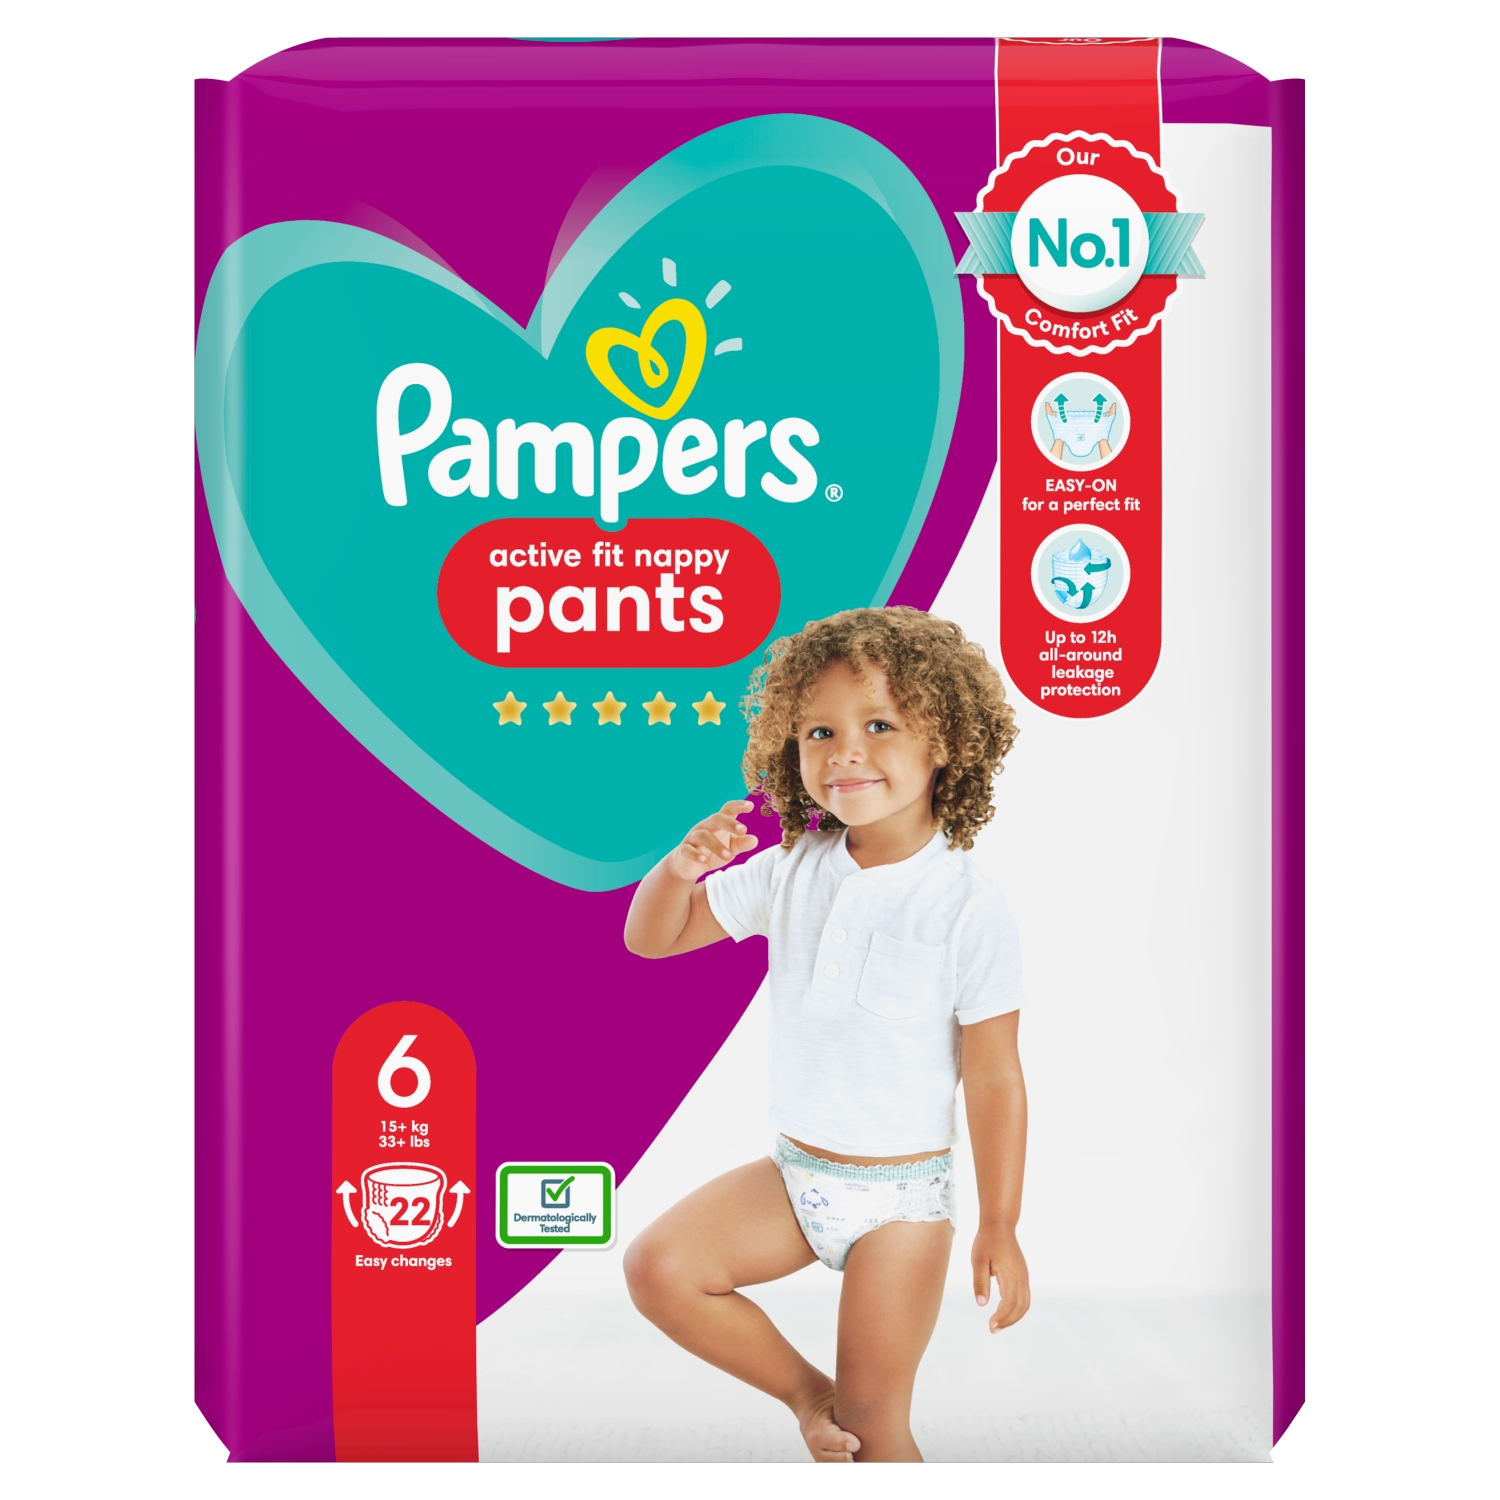 Pampers Active Fit Nappy Pants Size 6, 22 Nappies, 15kg+, Essential Pack